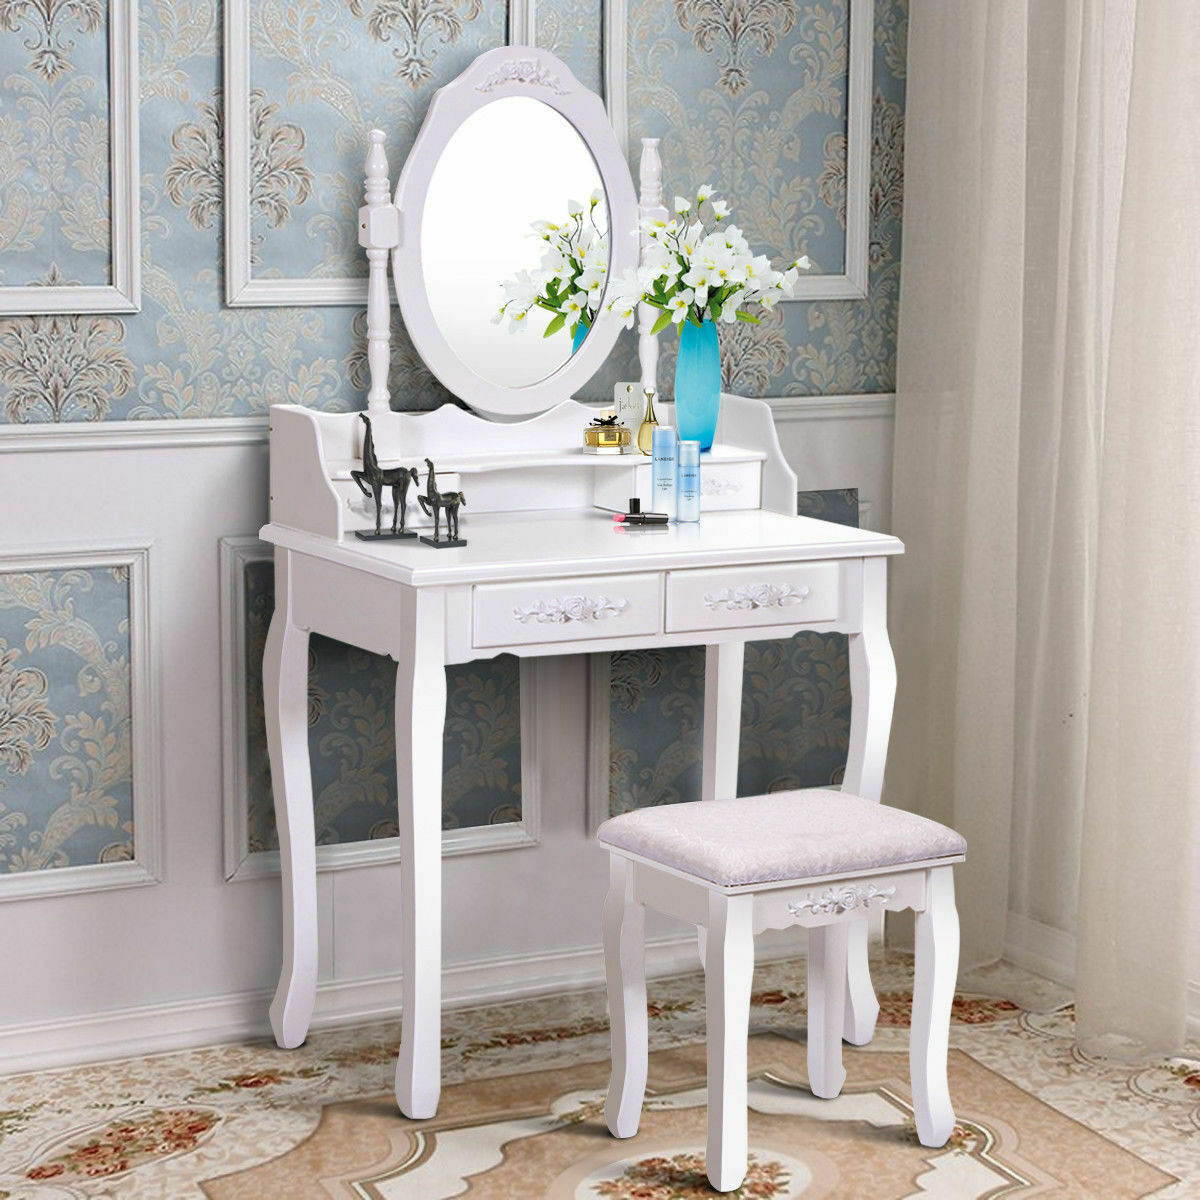 Wood White Vanity Makeup Dressing Table Set With Stool 4